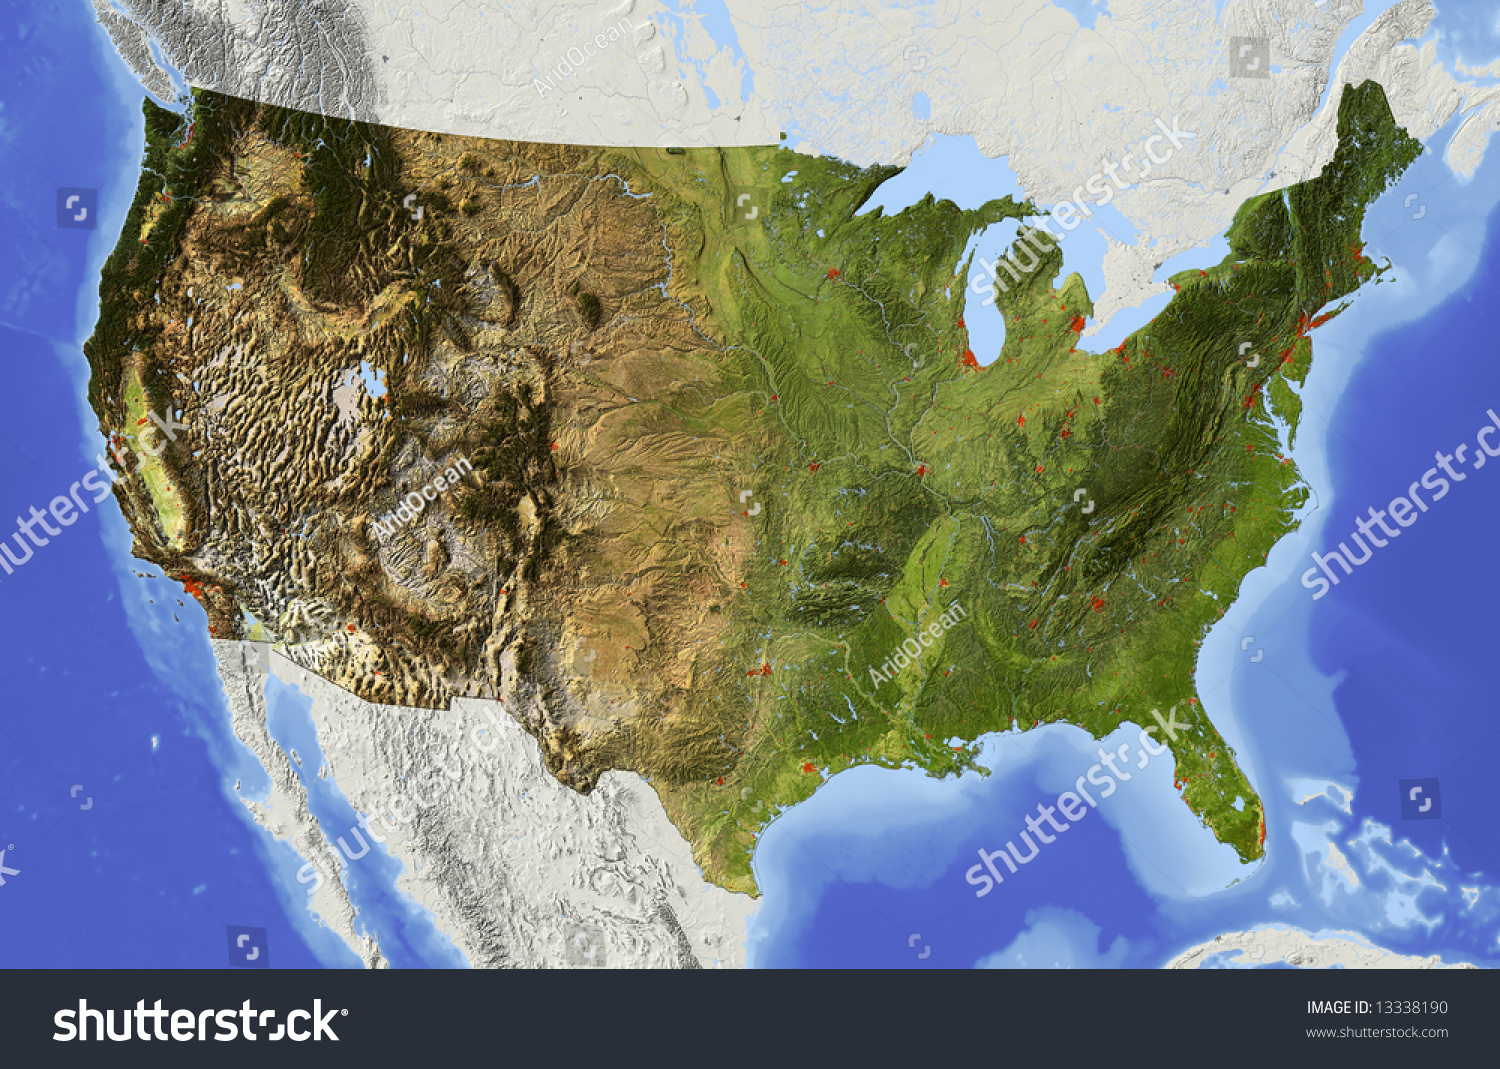 States Topo Map Maps Of The USA The United States Of America Map - Elevation map of usa